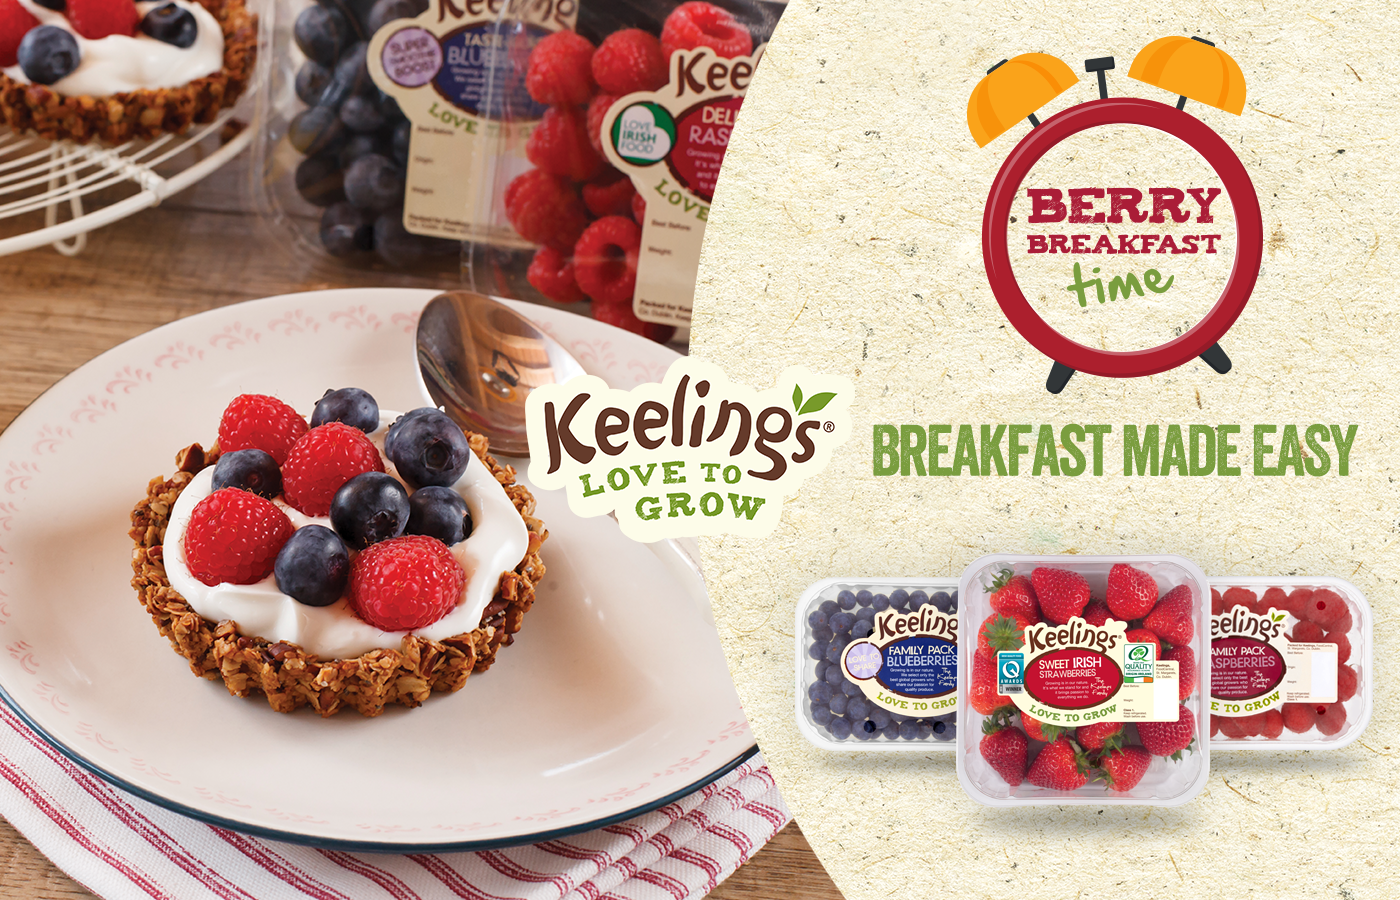 Berry Breakfast Time - Breakfast Made Easy with Keelings